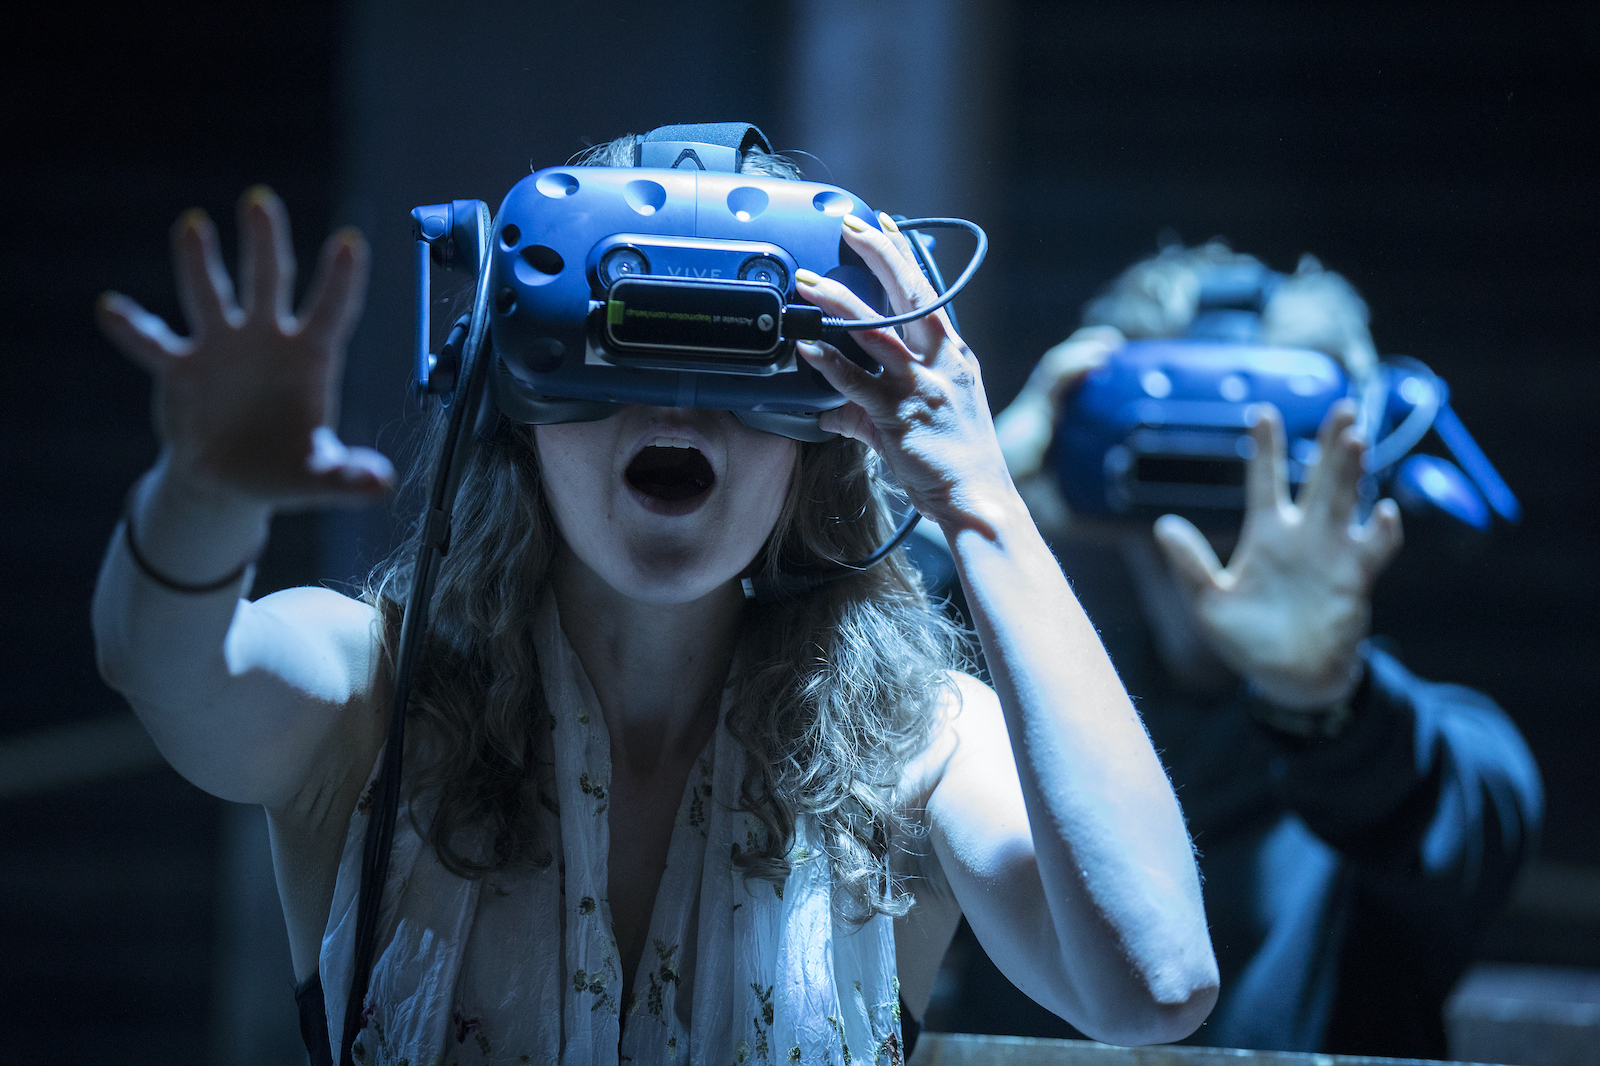 Immersive experiences | layered reality, artainment & more | blooloop